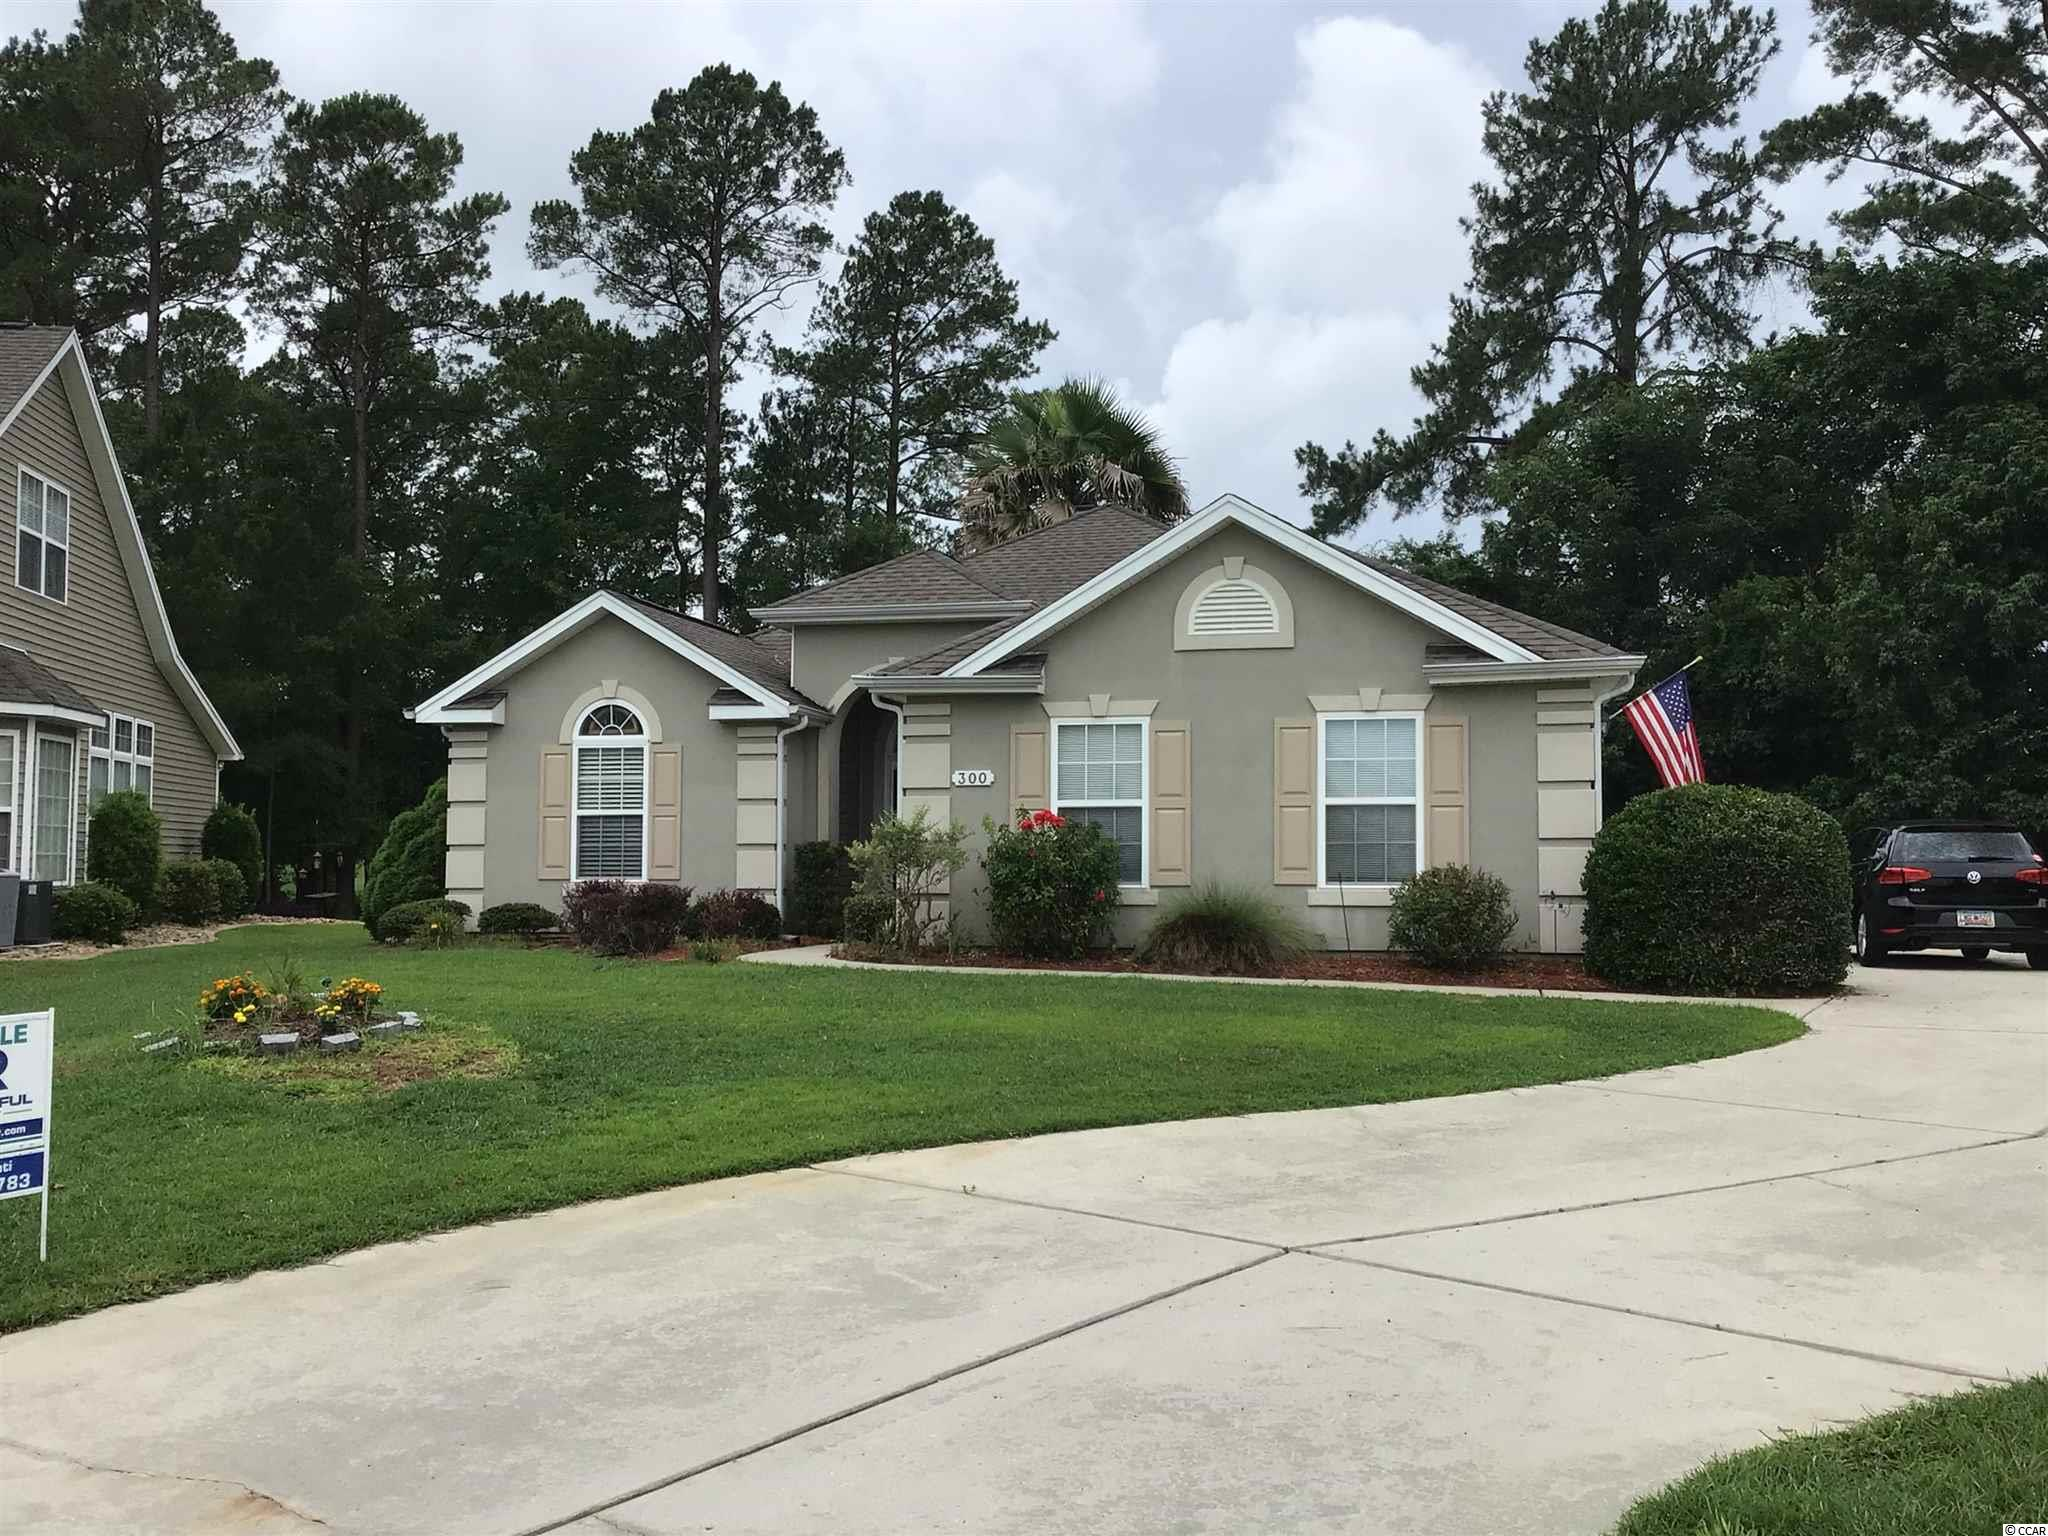 Welcome Home to the only property currently available in the upscale community of Arrowhead Golf Course.  This 3 bedroom 2 bath home sits on one of the larger lots in the Maitland Section overlooking the beautiful golf course & pond.  This single level home has wood & tile floors, Stainless Steel appliances, fireplace, open floor plan, master bath has double sink & walk in closet.  Arrowhead is located in the award winning school district of Carolina Forest & is close to everything Myrtle Beach has to offer!